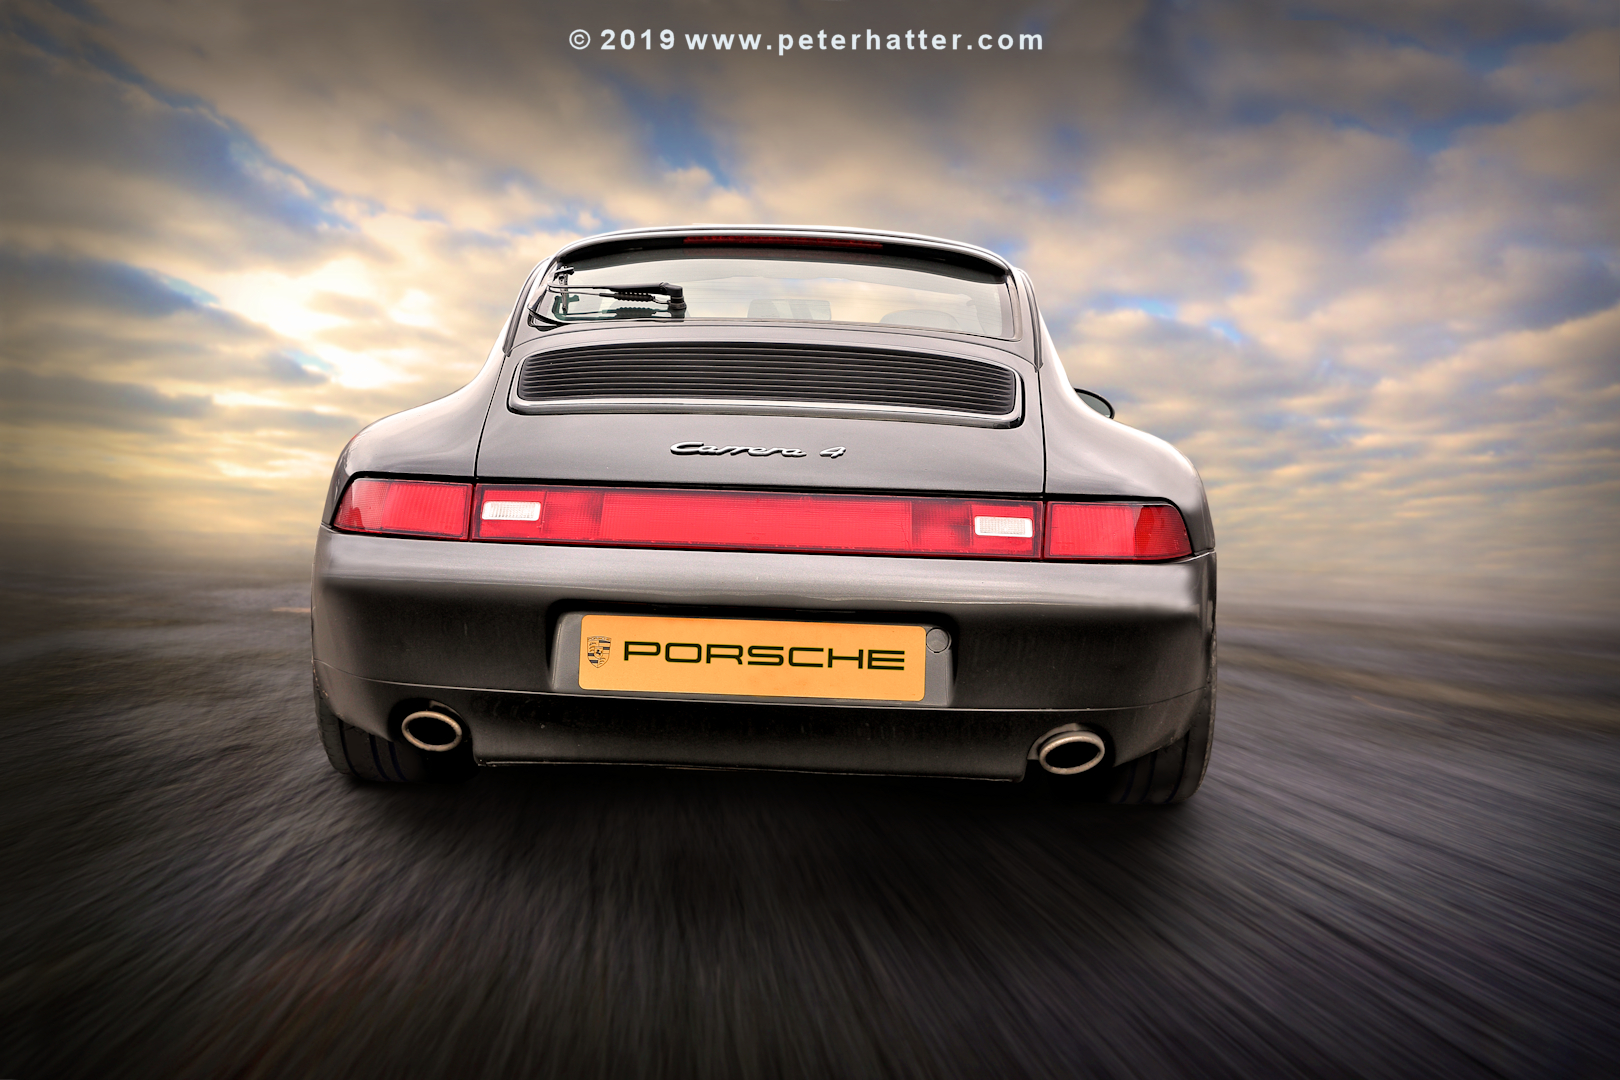 An image of a Porsche 911 Carrera rear view.